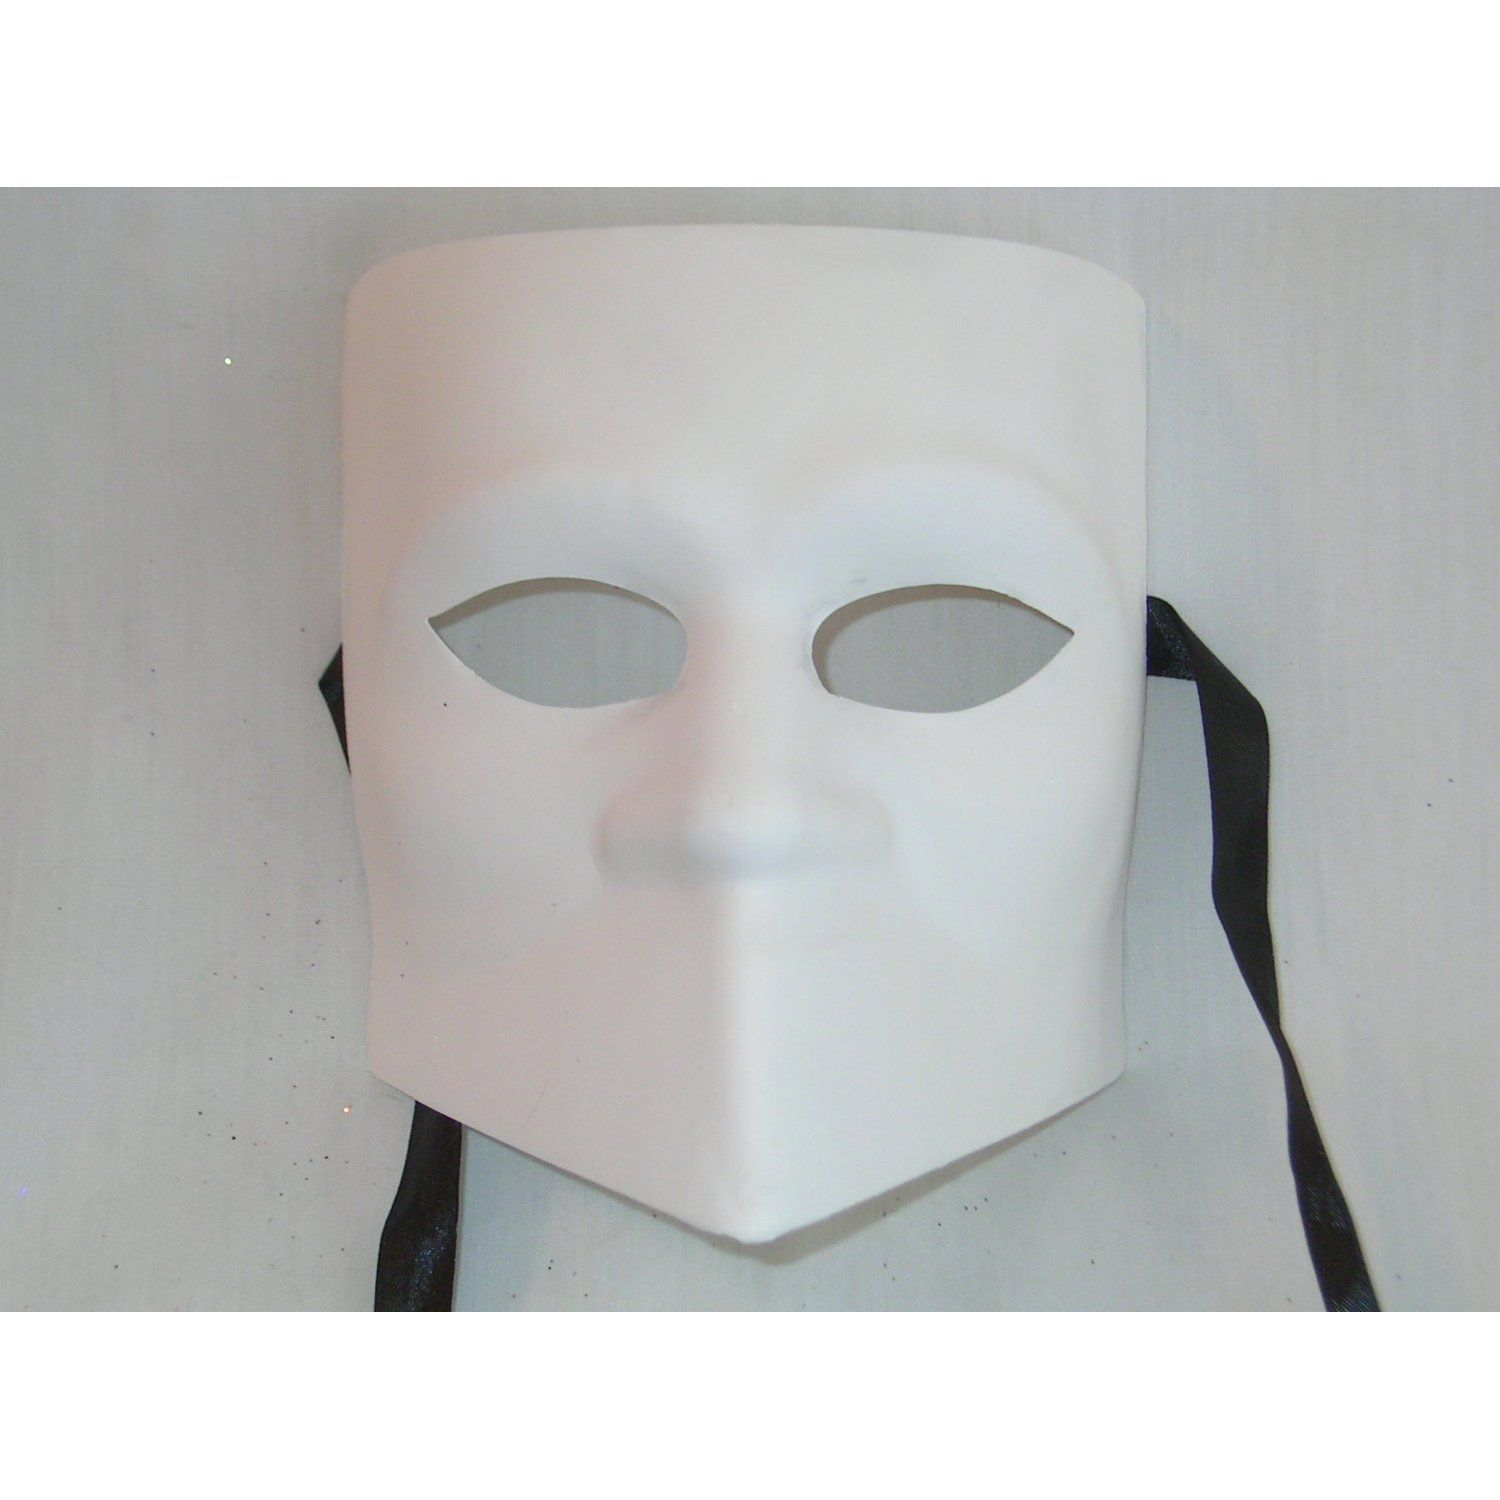 Blank Face Masks To Decorate Amazon Venice Buys Venetian Masks Blank White Bauta Grezzo